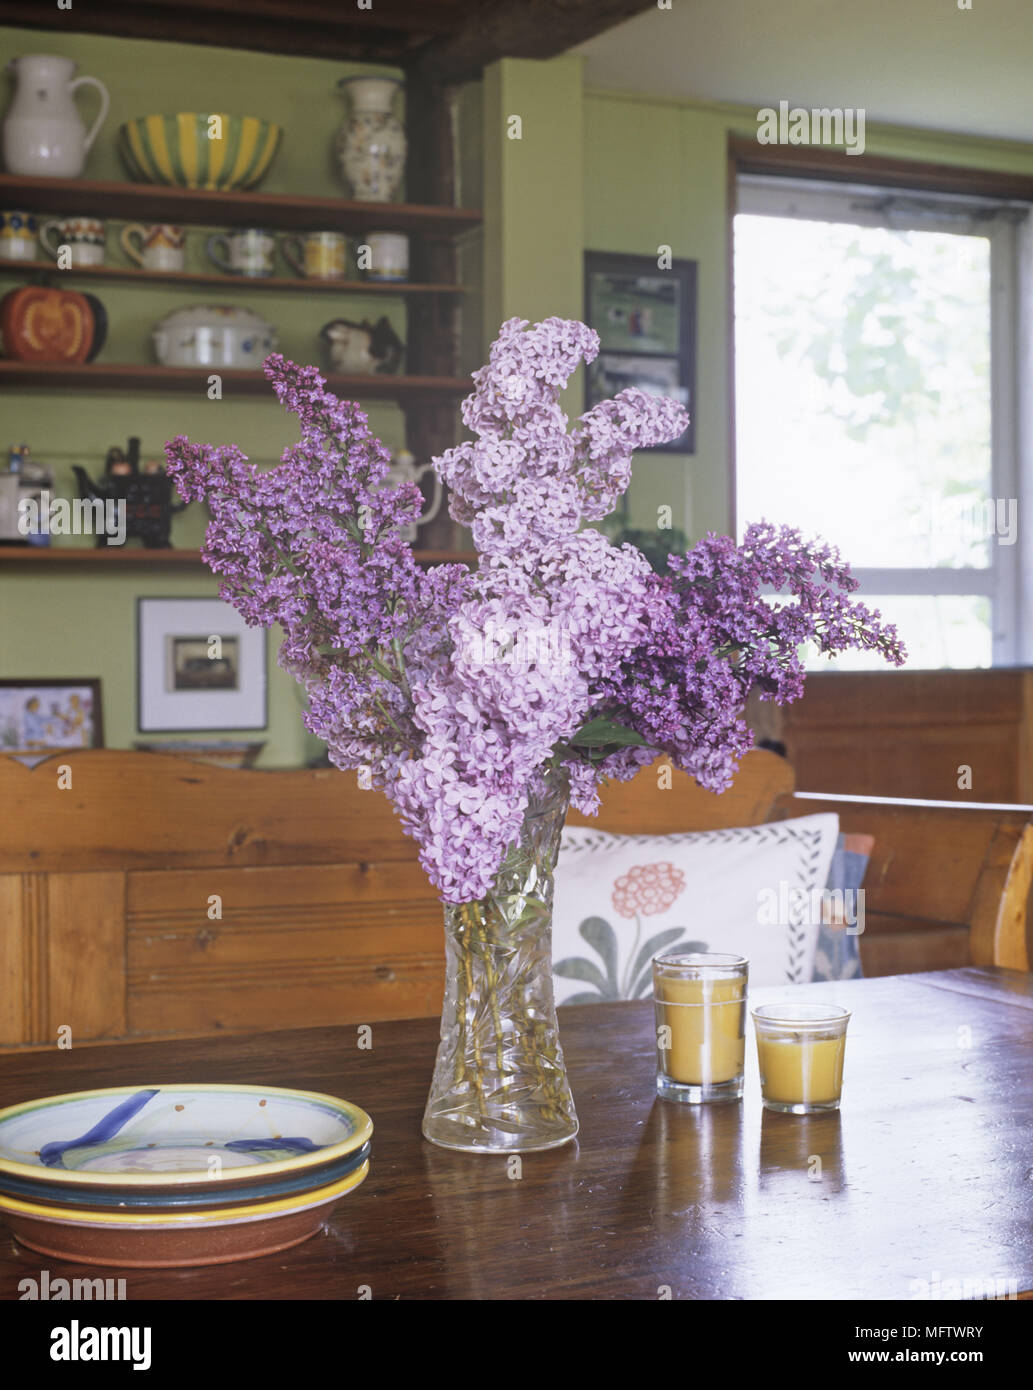 Details of a vase of purple flowers on a wooden dining table with a plate and two candles. Stock Photo